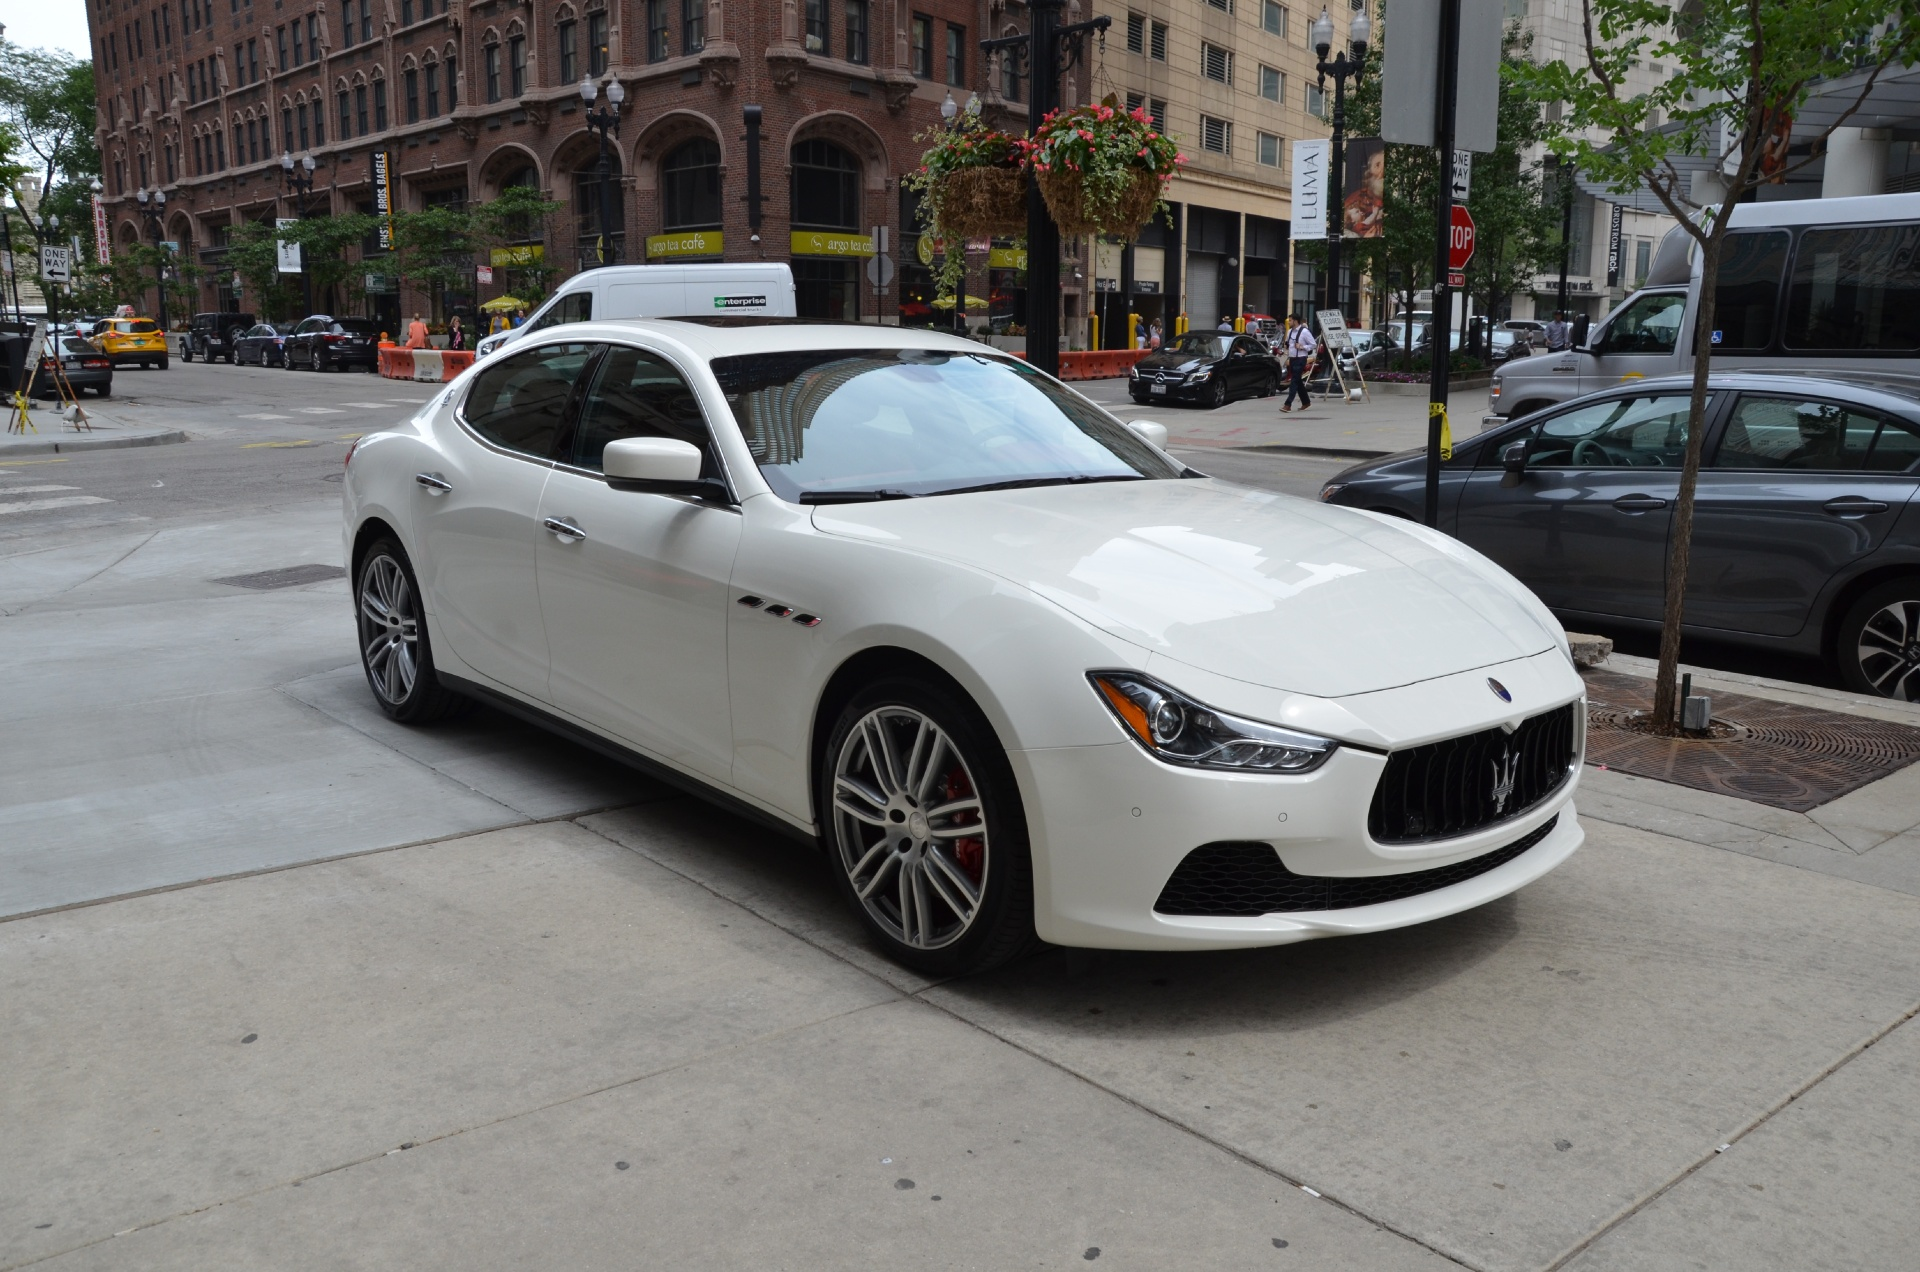 2015 maserati ghibli sq4 s q4 stock m454 s for sale near. Black Bedroom Furniture Sets. Home Design Ideas